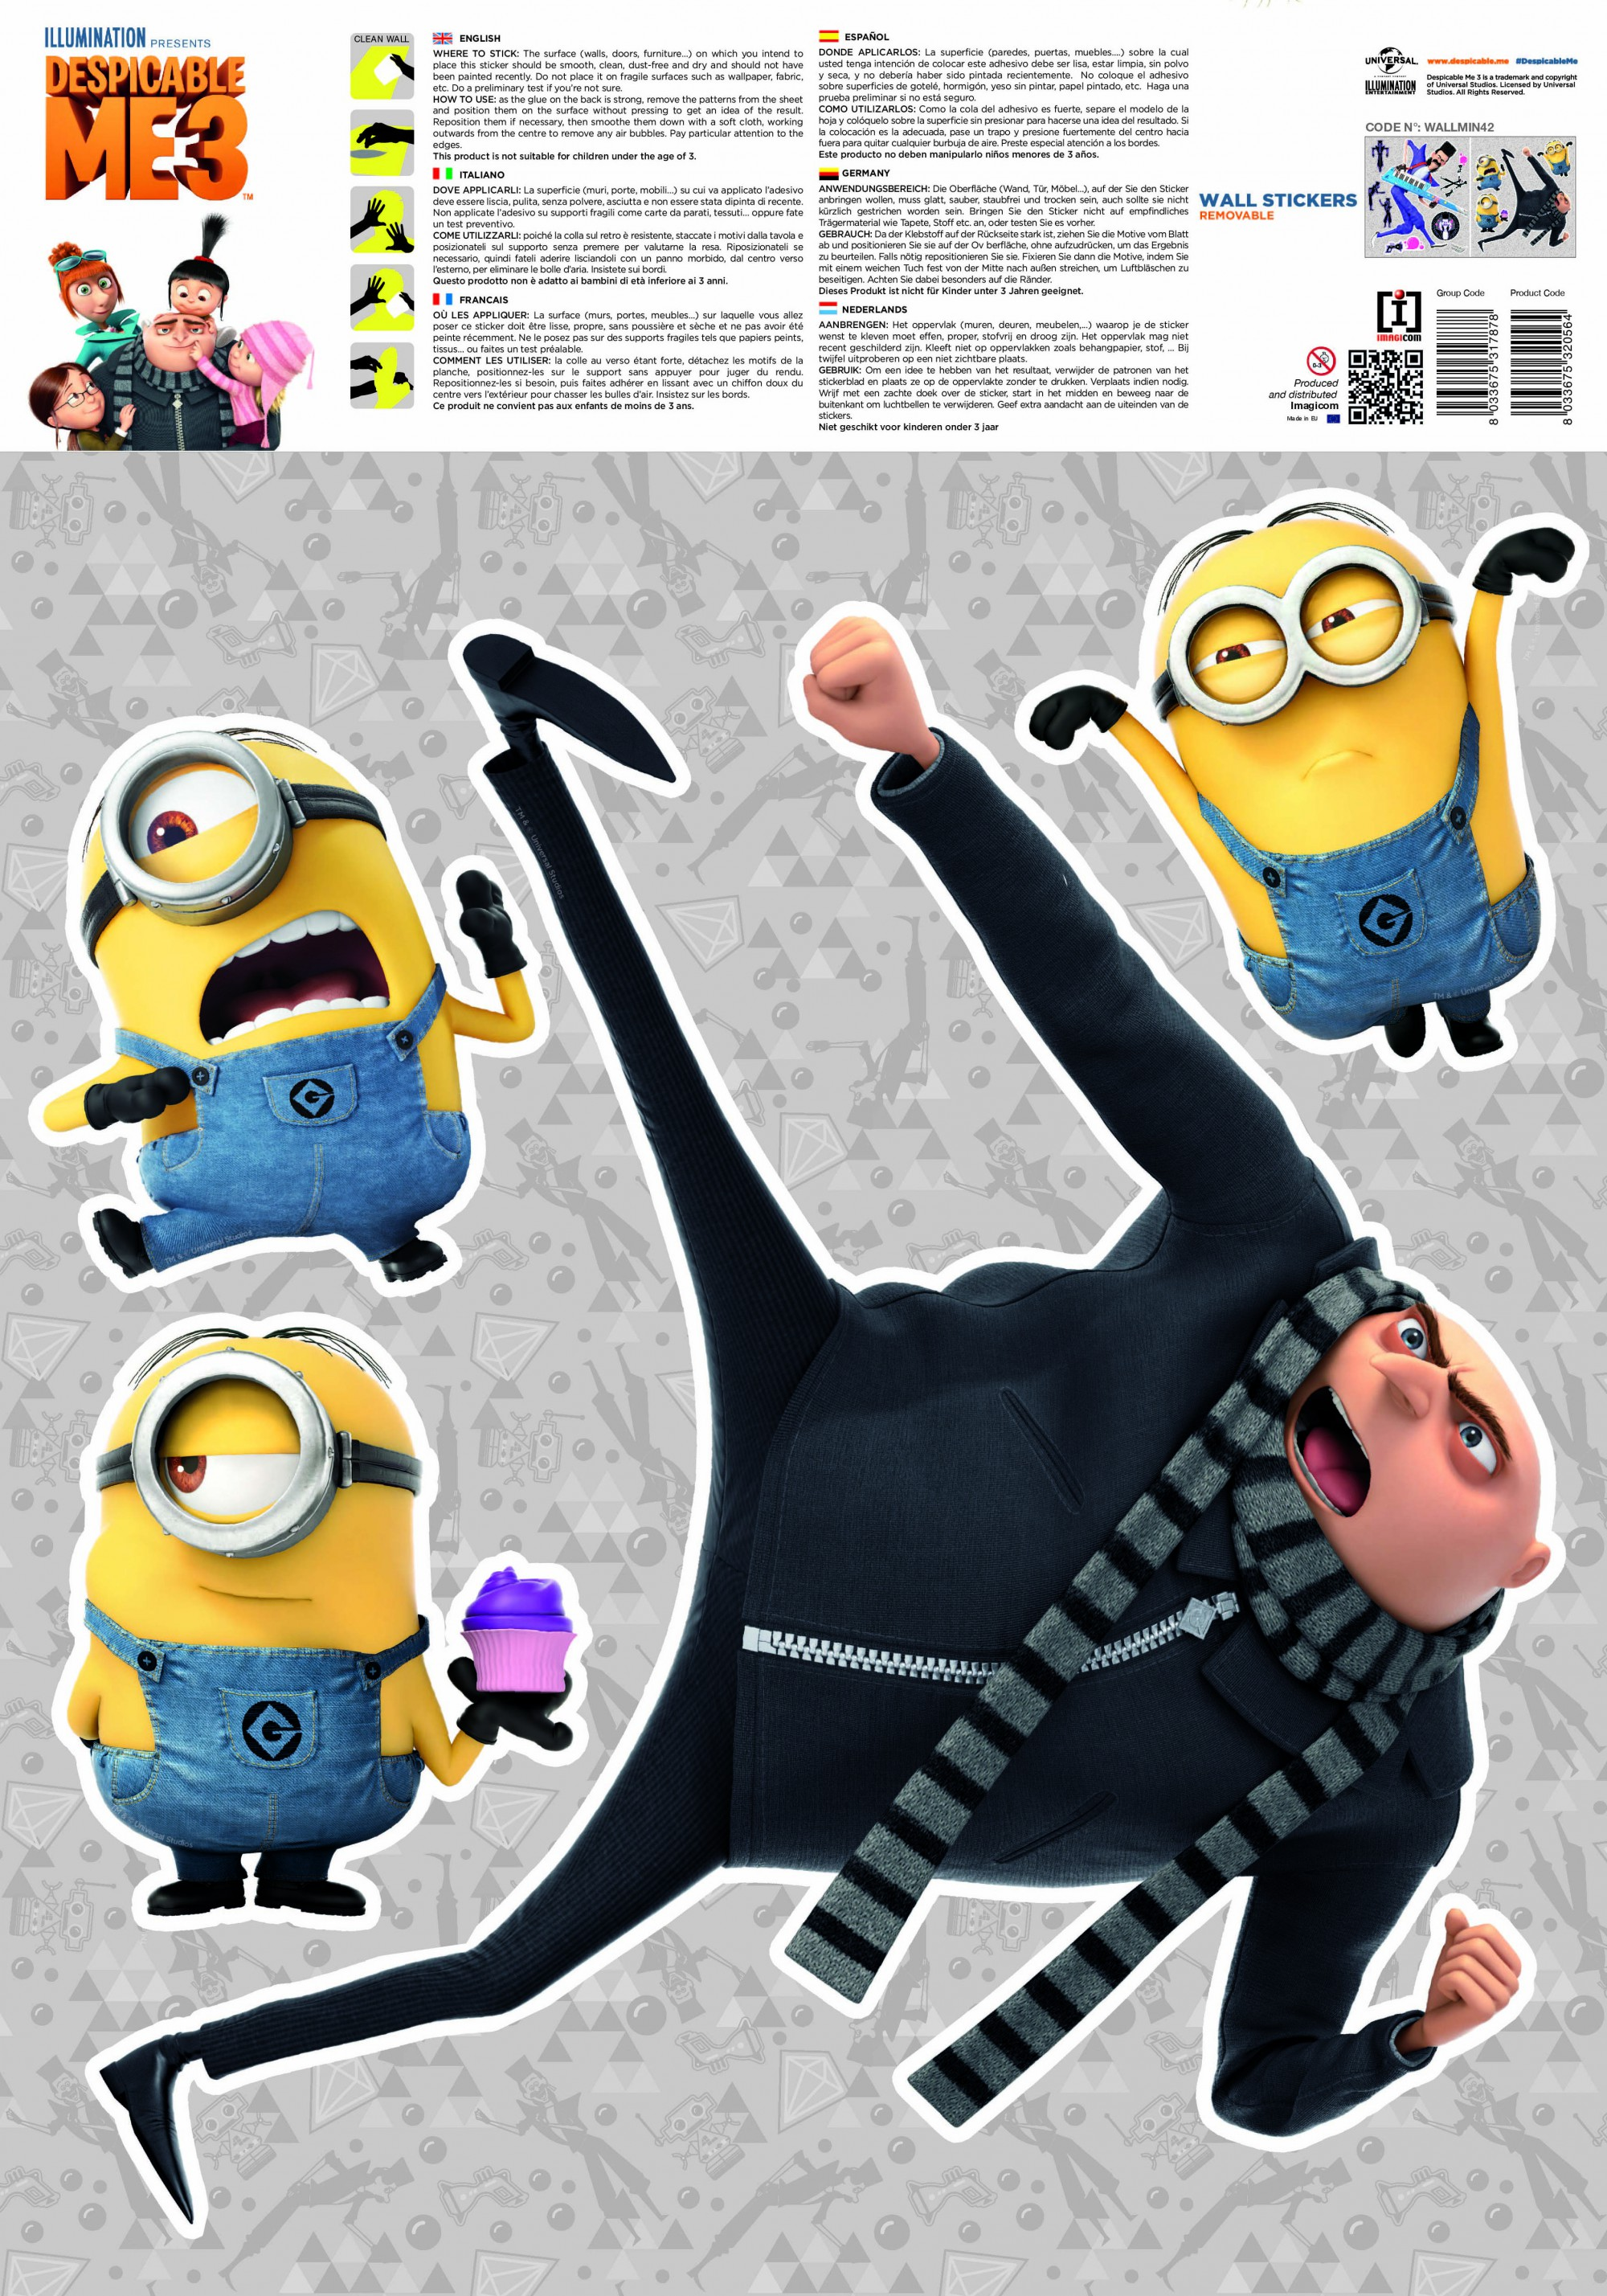 Despicable Me 3 Bratt Wall Stickers And Decorations By Imagicom  # Muebles Fiction